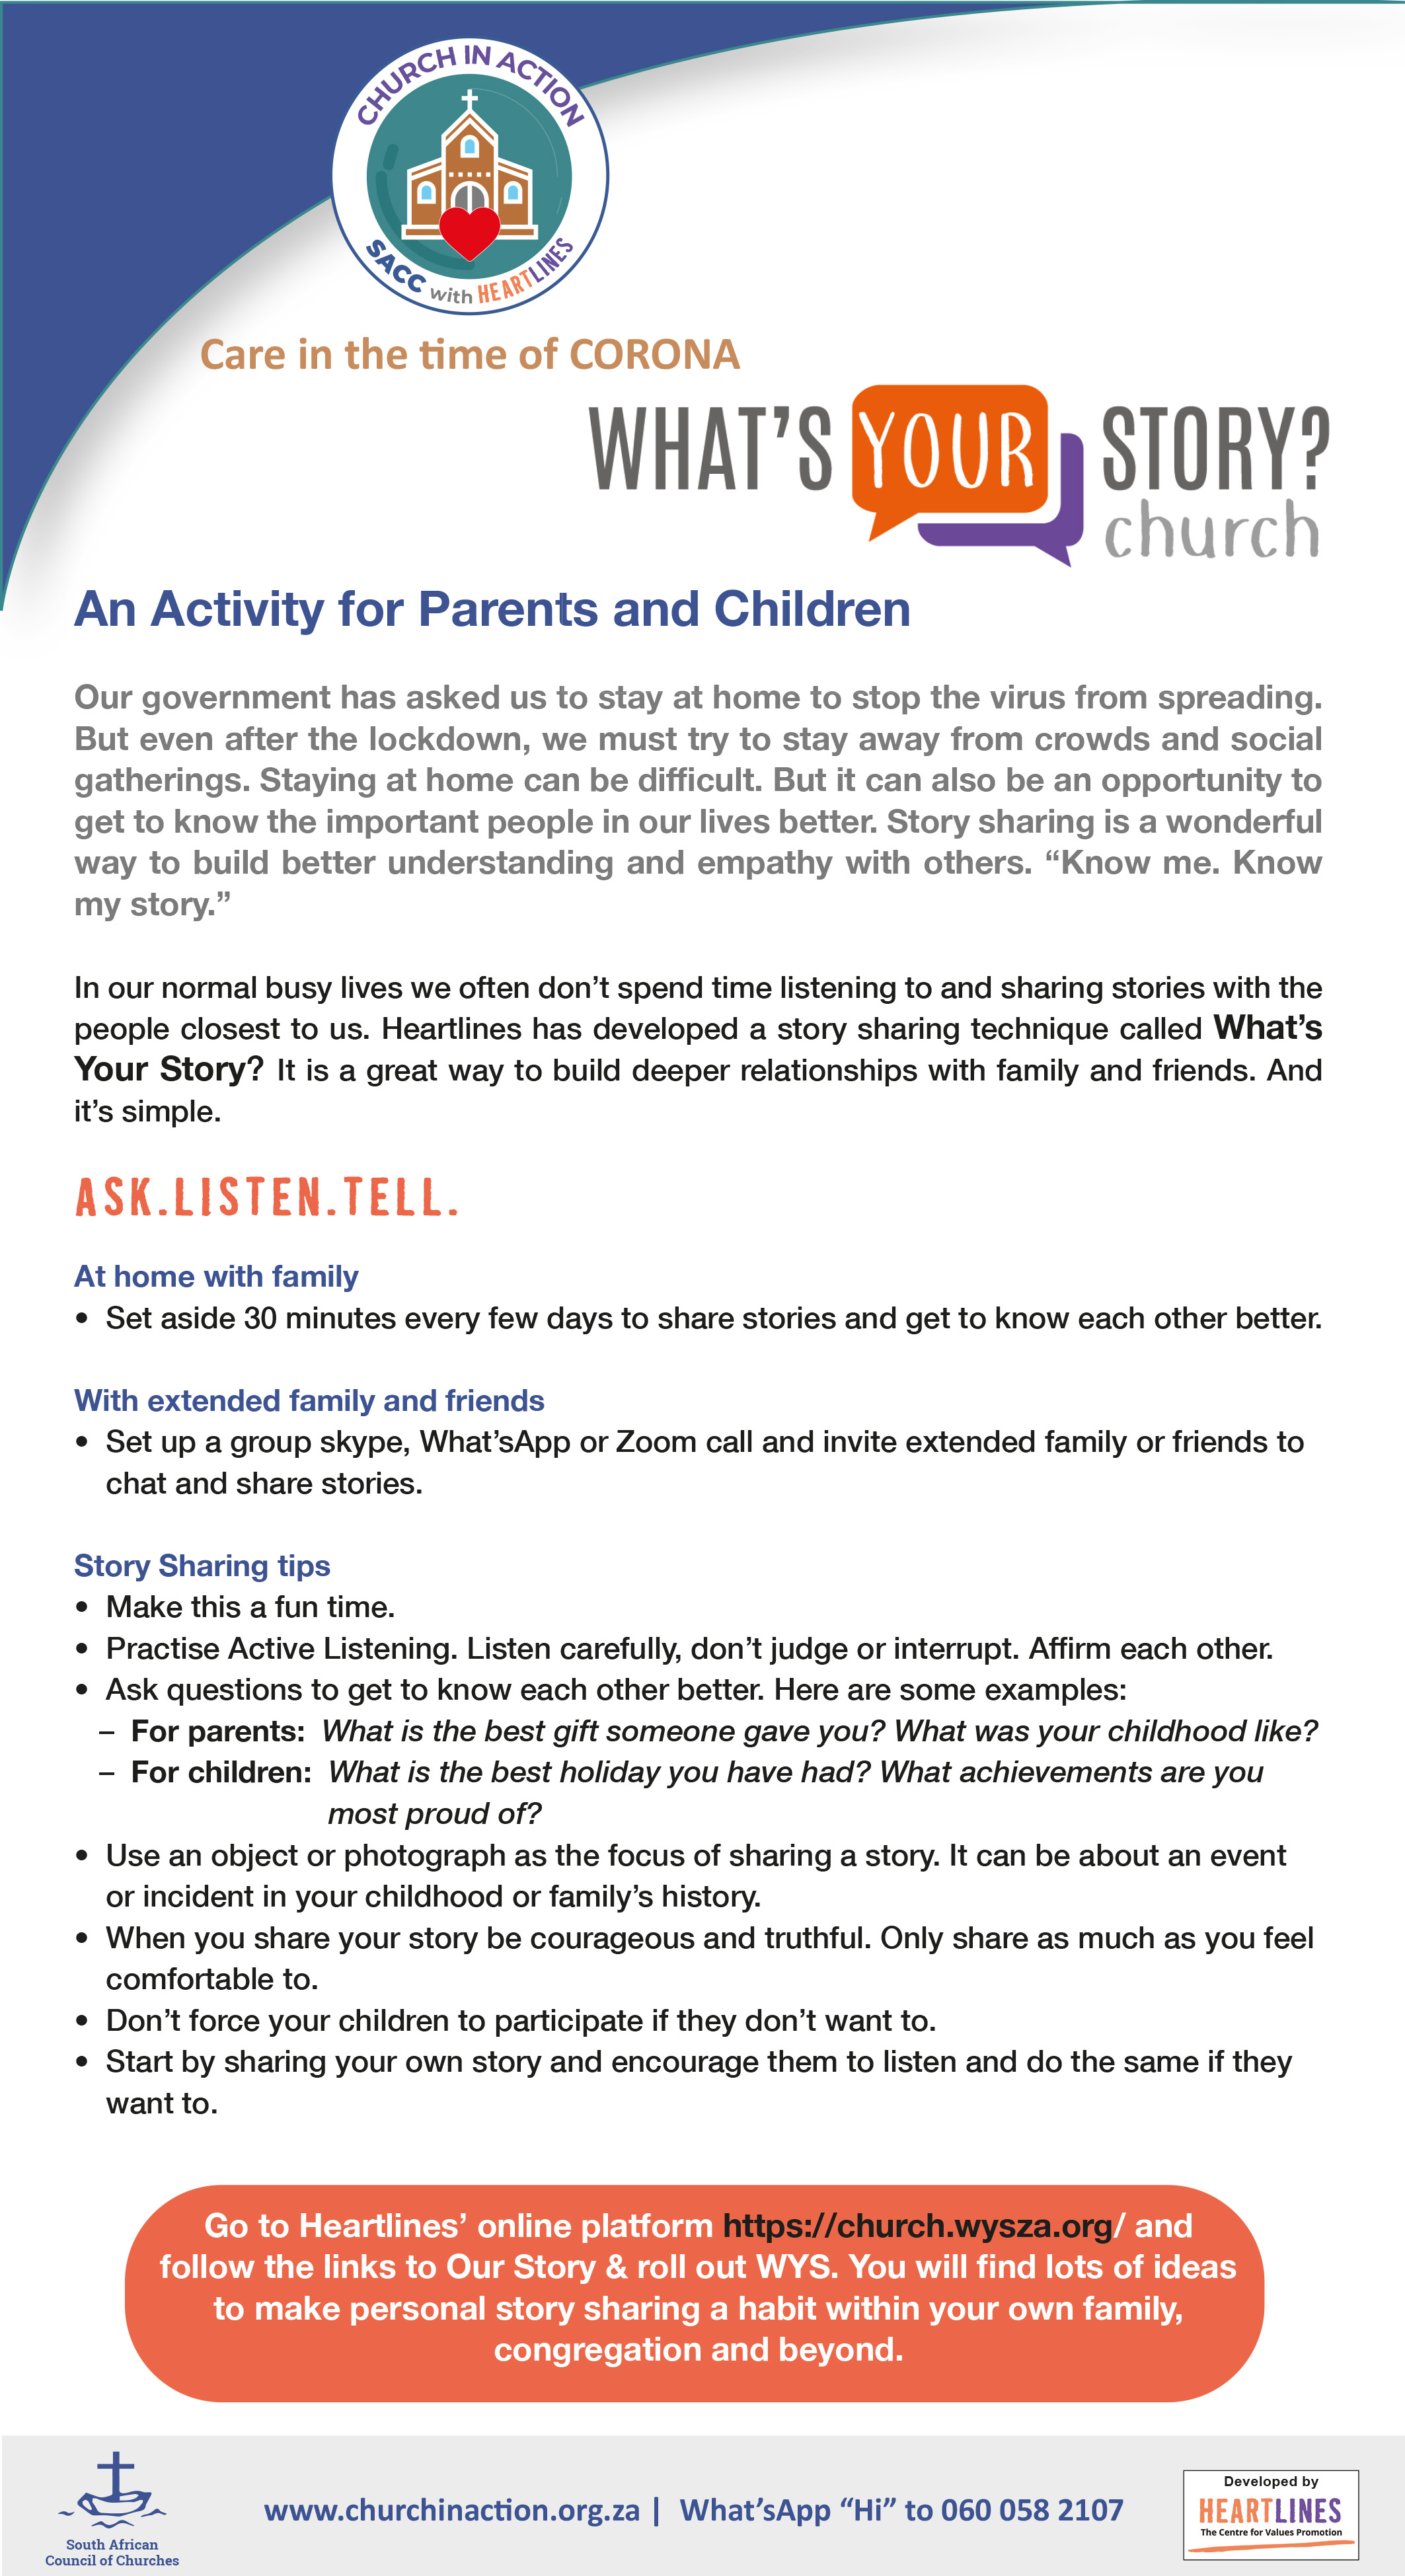 An Activity for Parents and Children